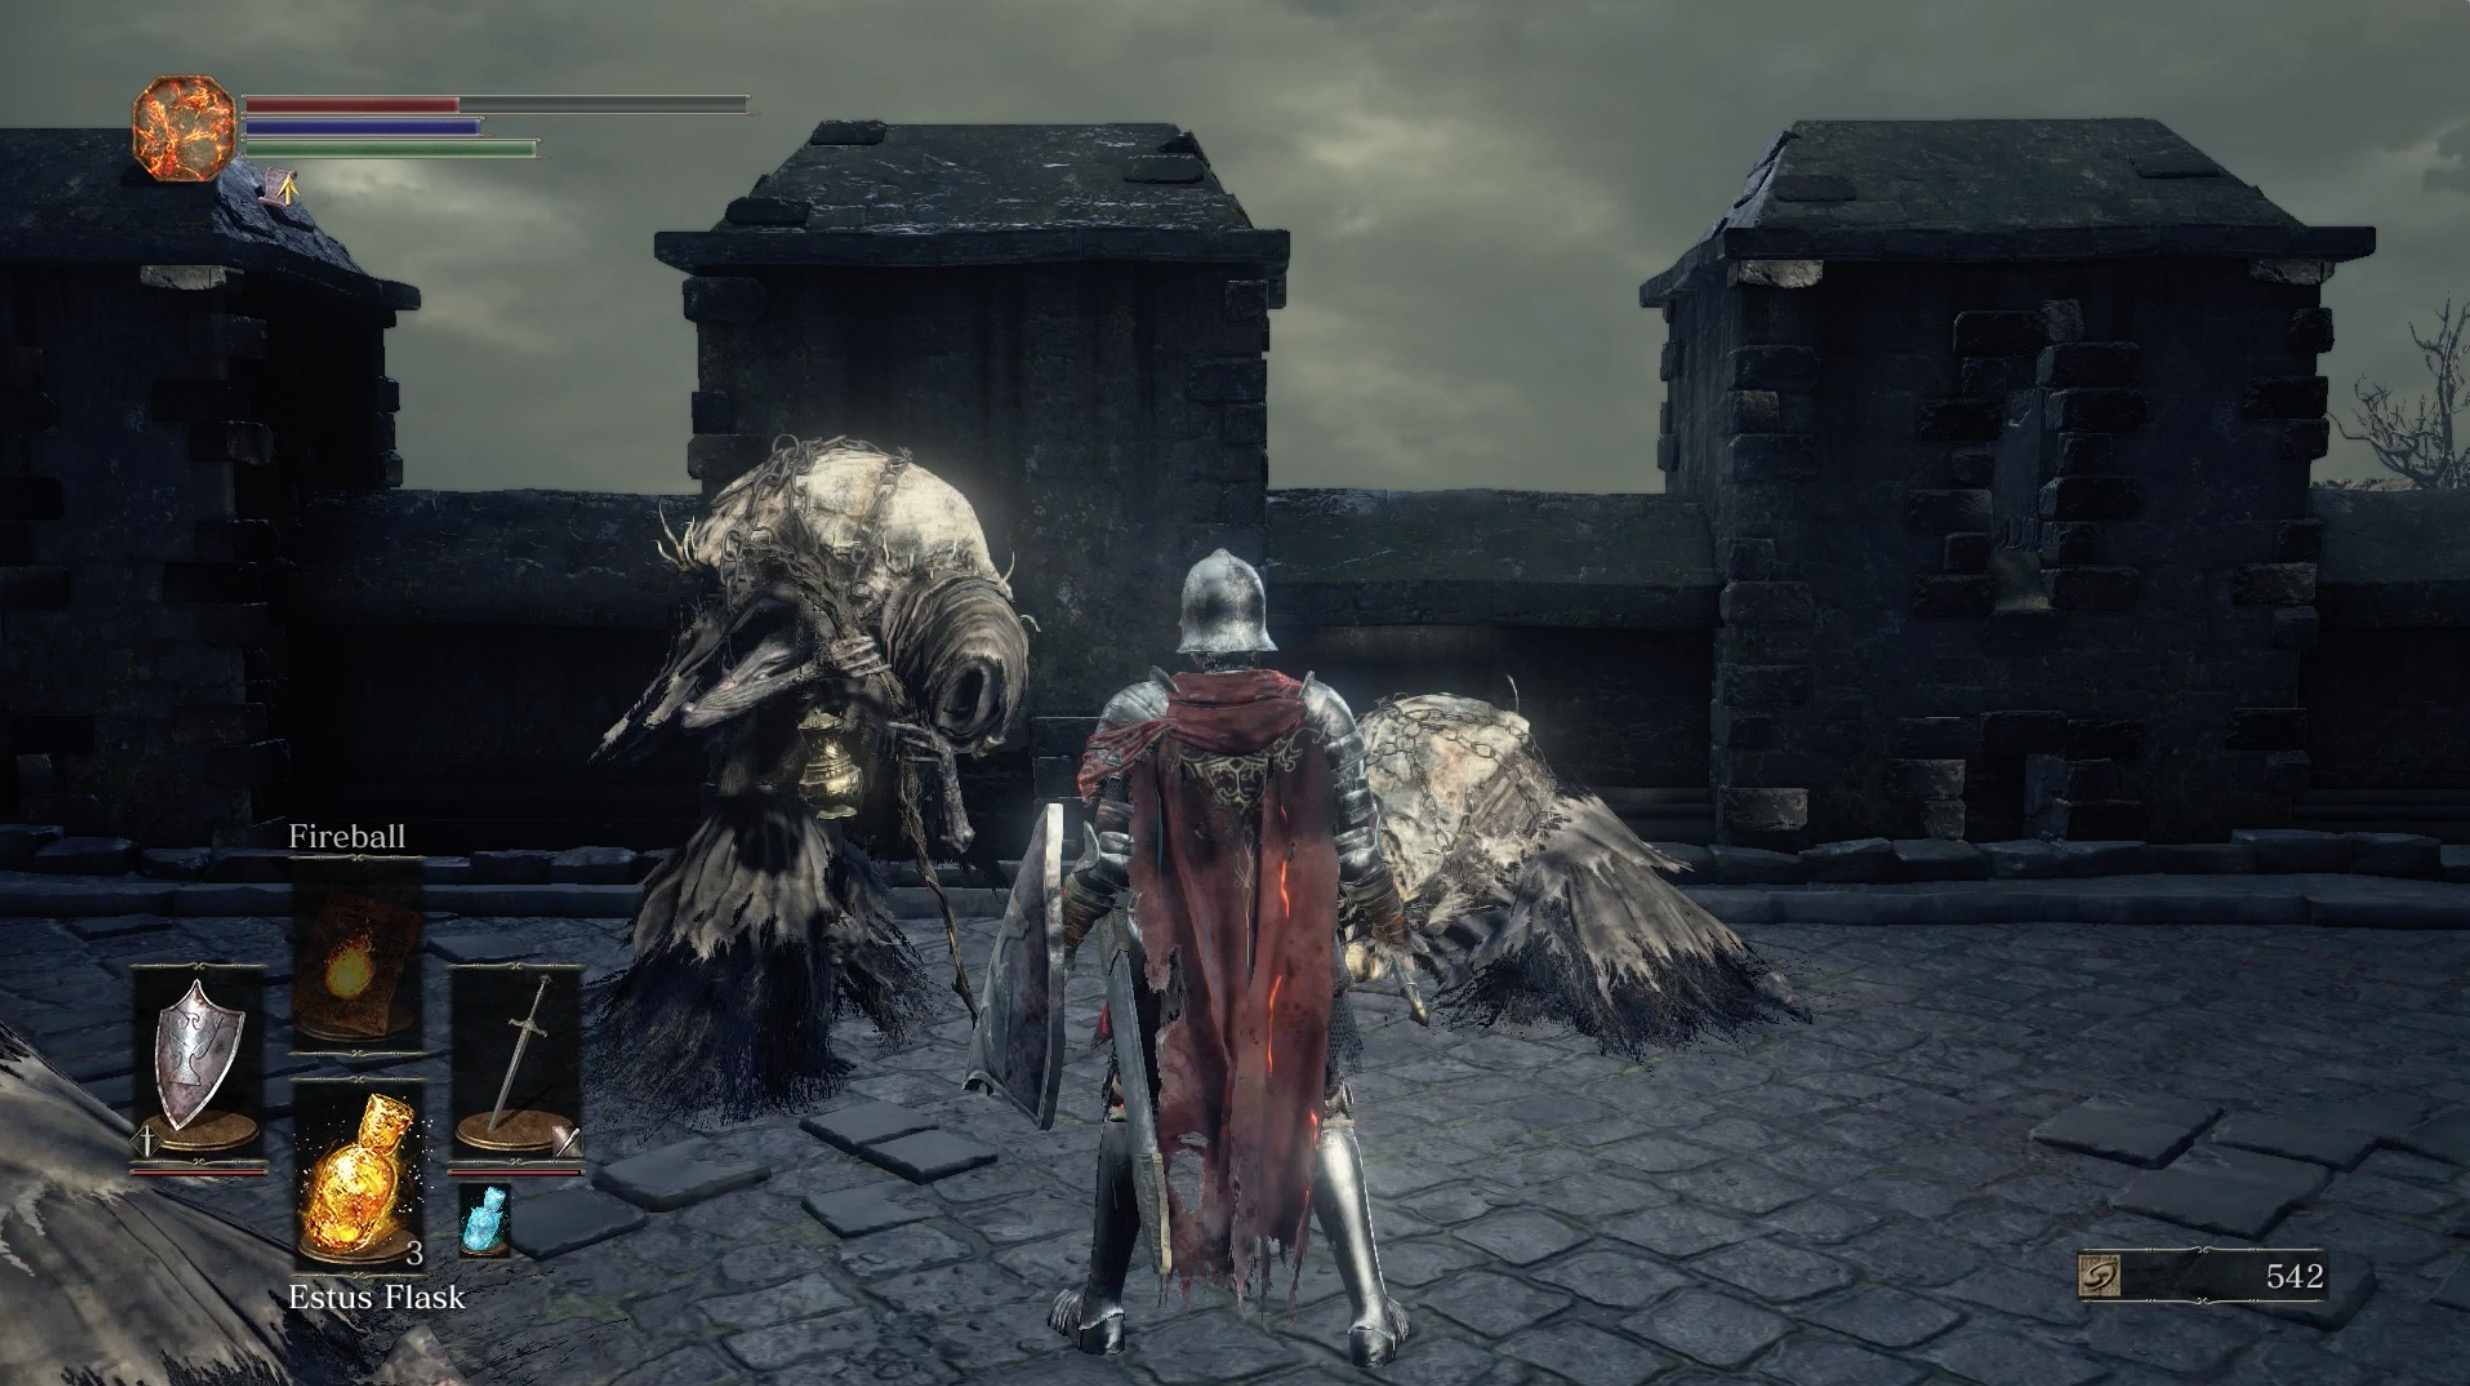 Dark Souls 3 Undead Settlement Walkthrough Polygon To recruit yoel, you must visit him near if you heal the dark sigil at any point, yuria will leave, and the third ending will be closed off. dark souls 3 undead settlement